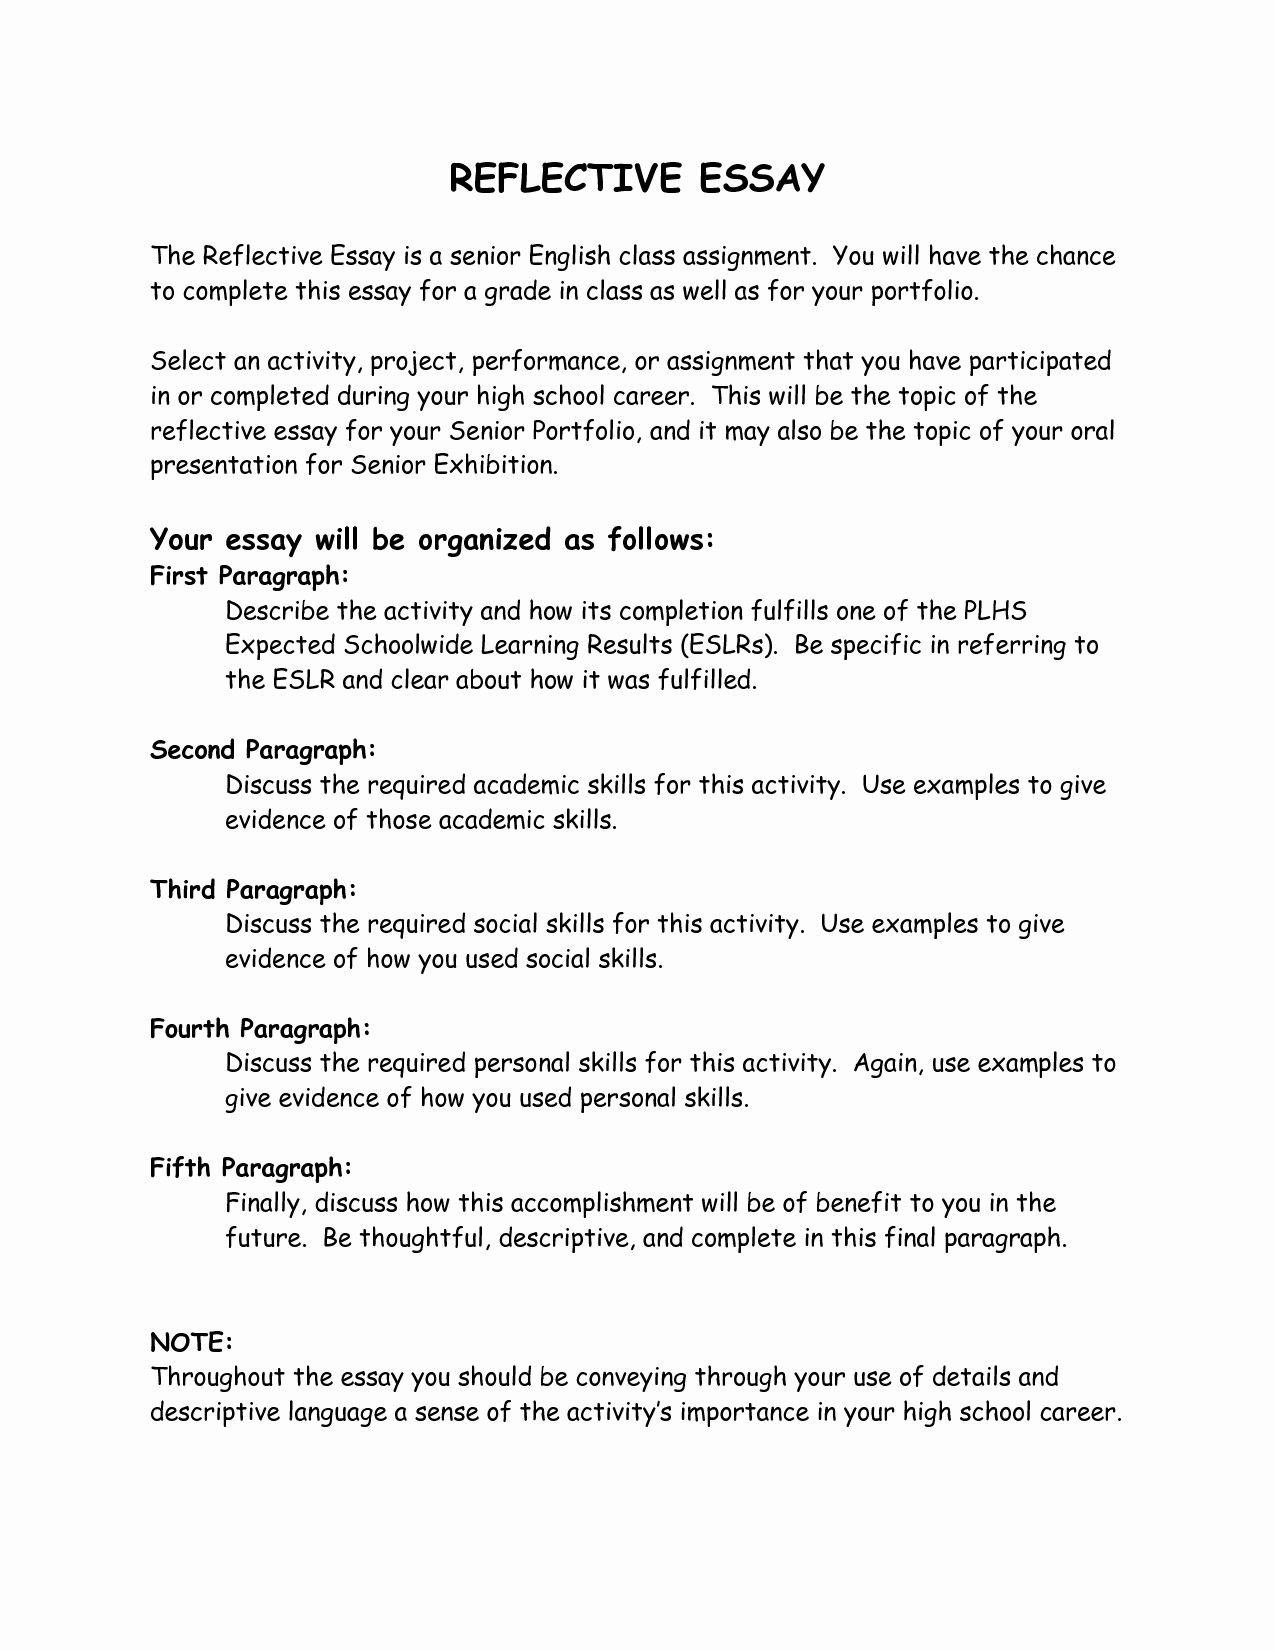 Personal reflective essay examples